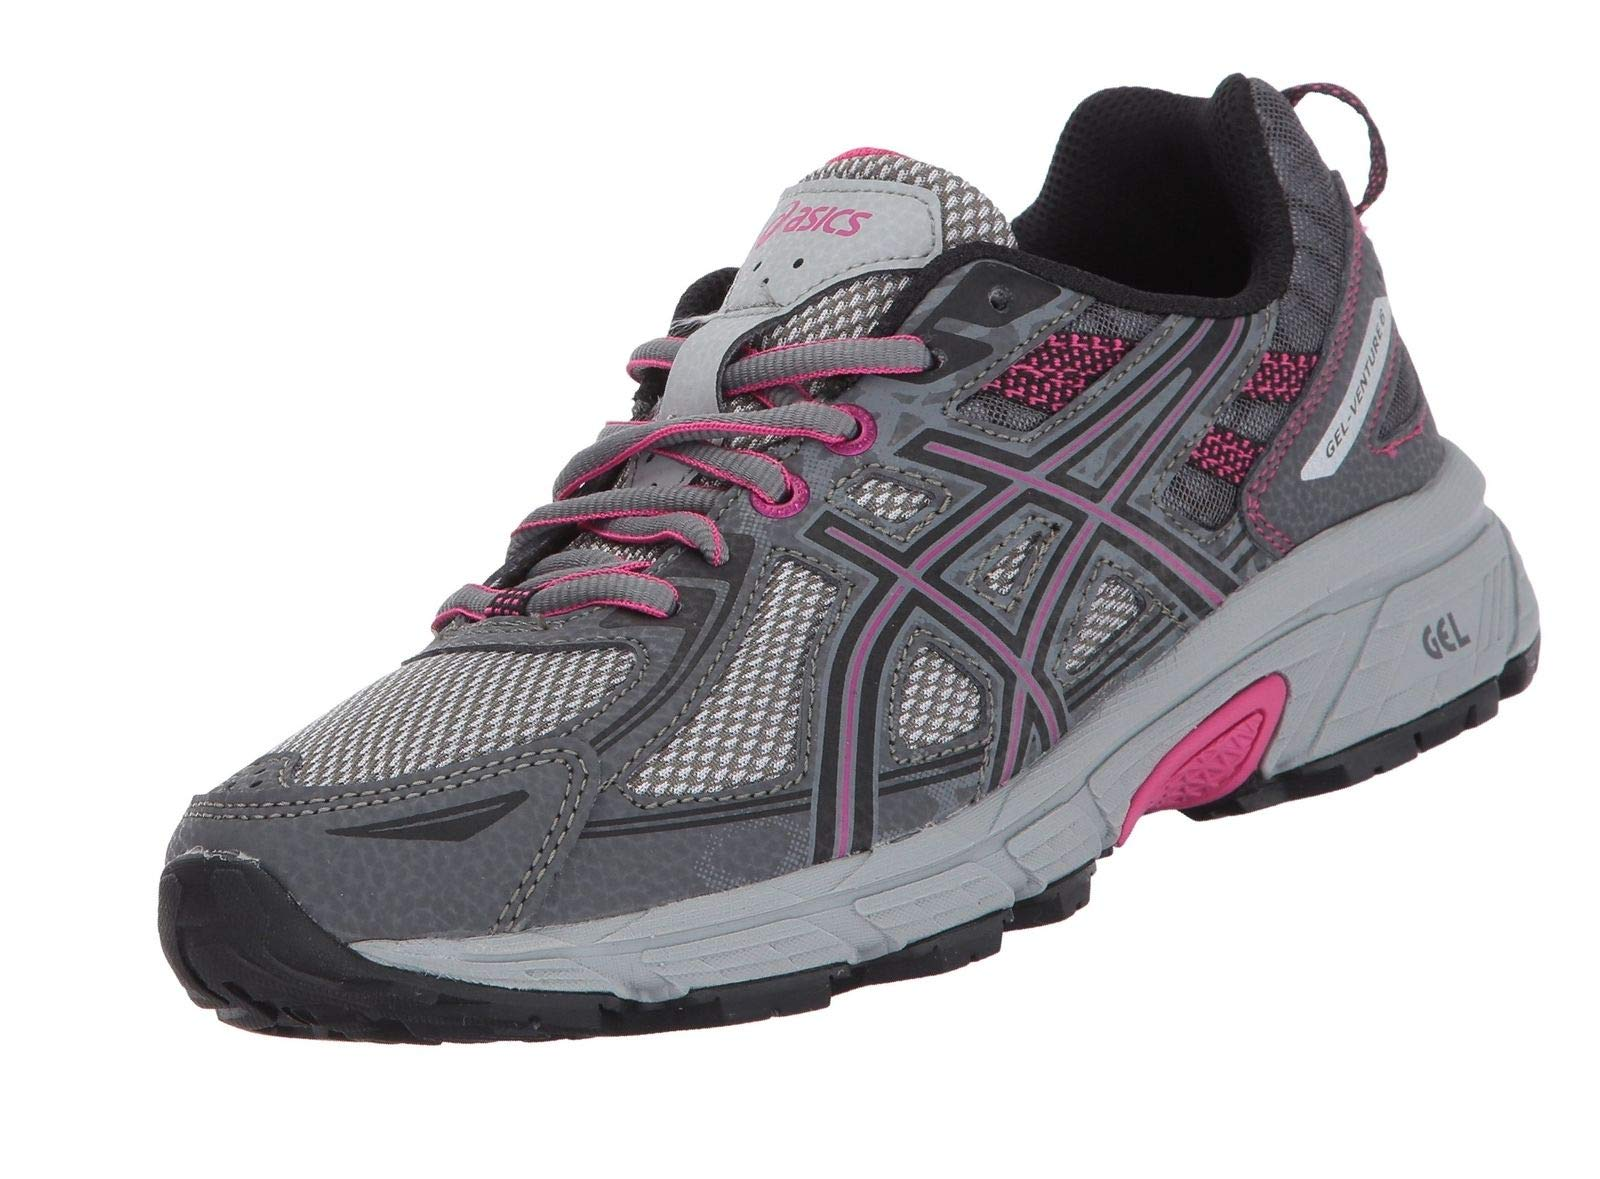 ASICS Women's Gel-Venture 6 Running-Shoes, Carbon/Black/Pink Peacock, 10 by ASICS